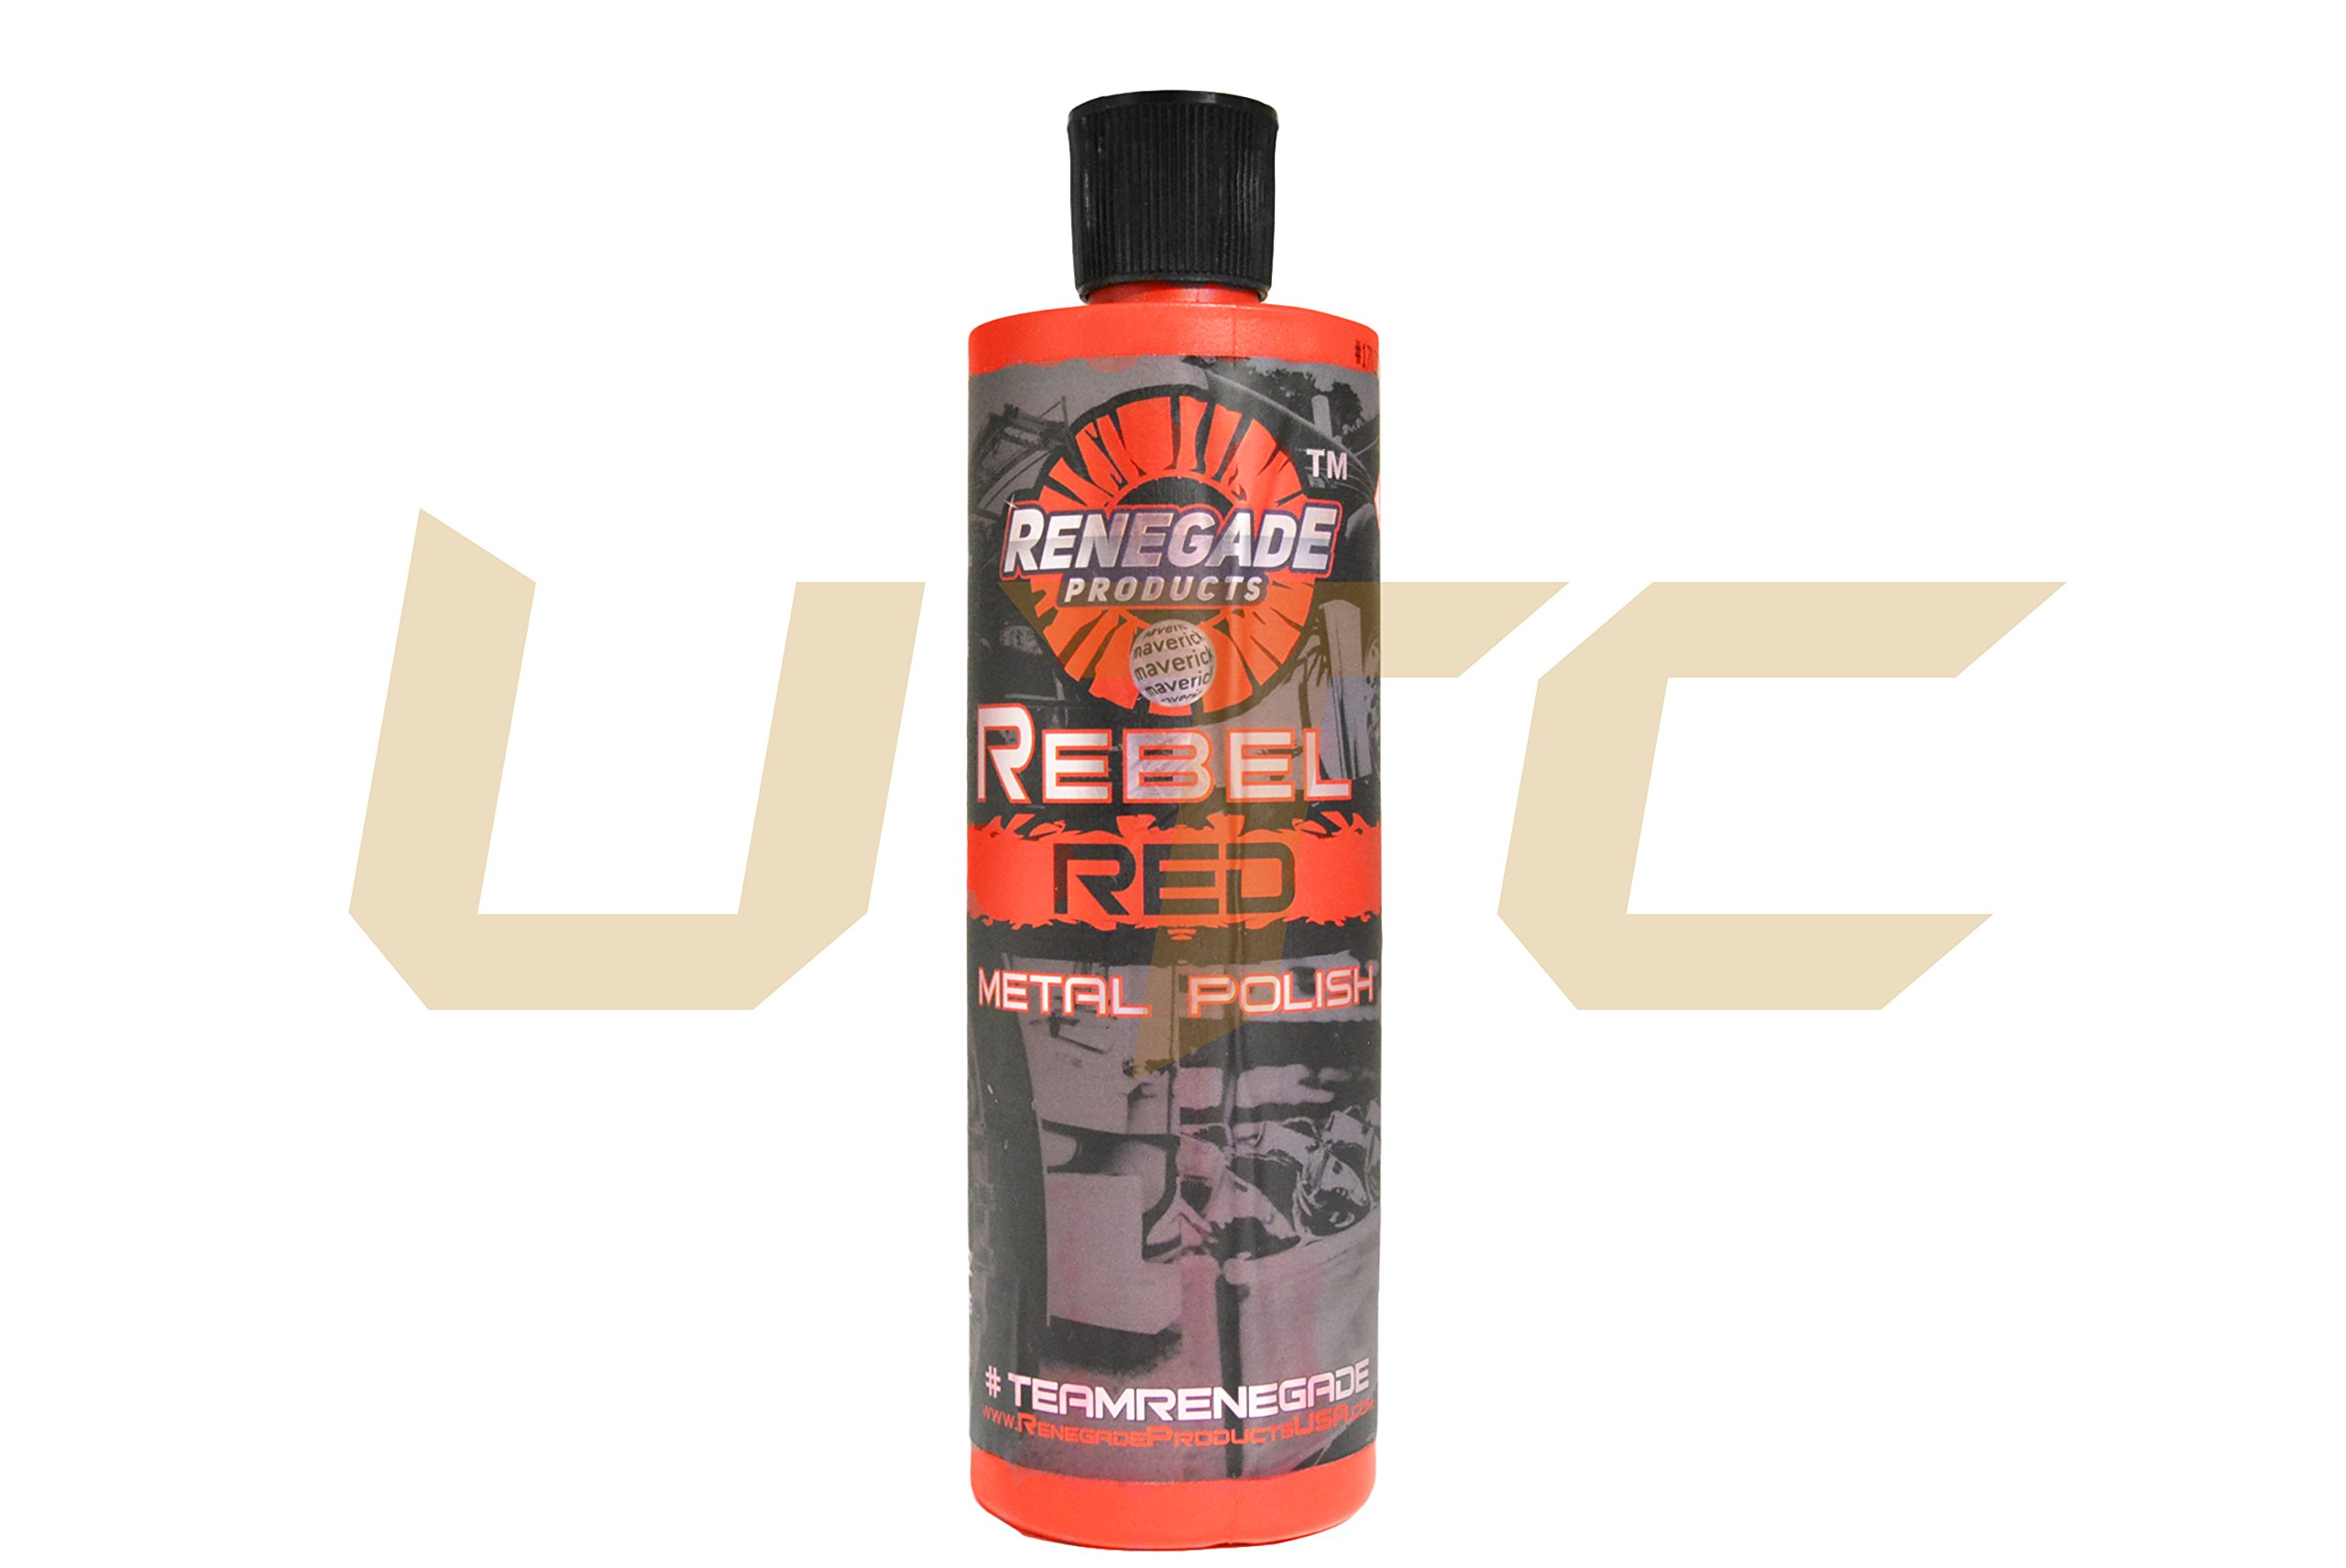 UTC 12oz Rebel Red Metal Polish Renegade Bottle Products for Aggressive Detail Cut Scratch Removal